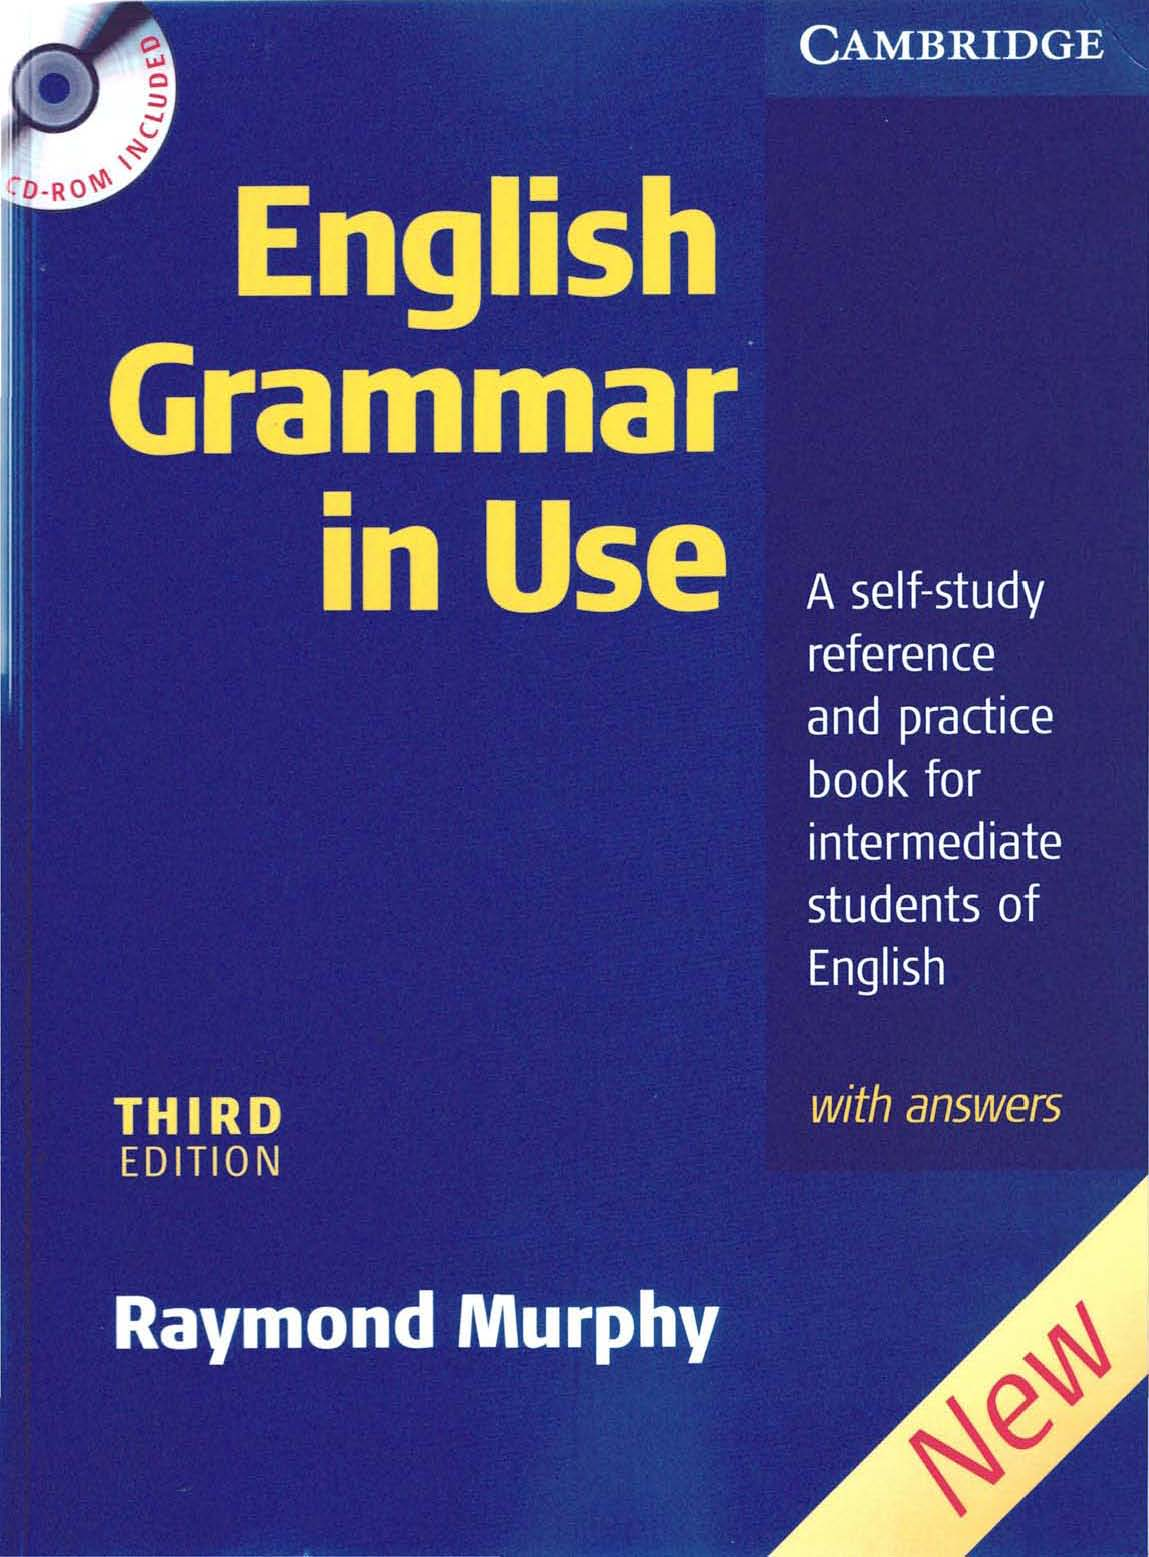 Download English Grammar In Use with Answers 3 edition ~ M Ahkam A